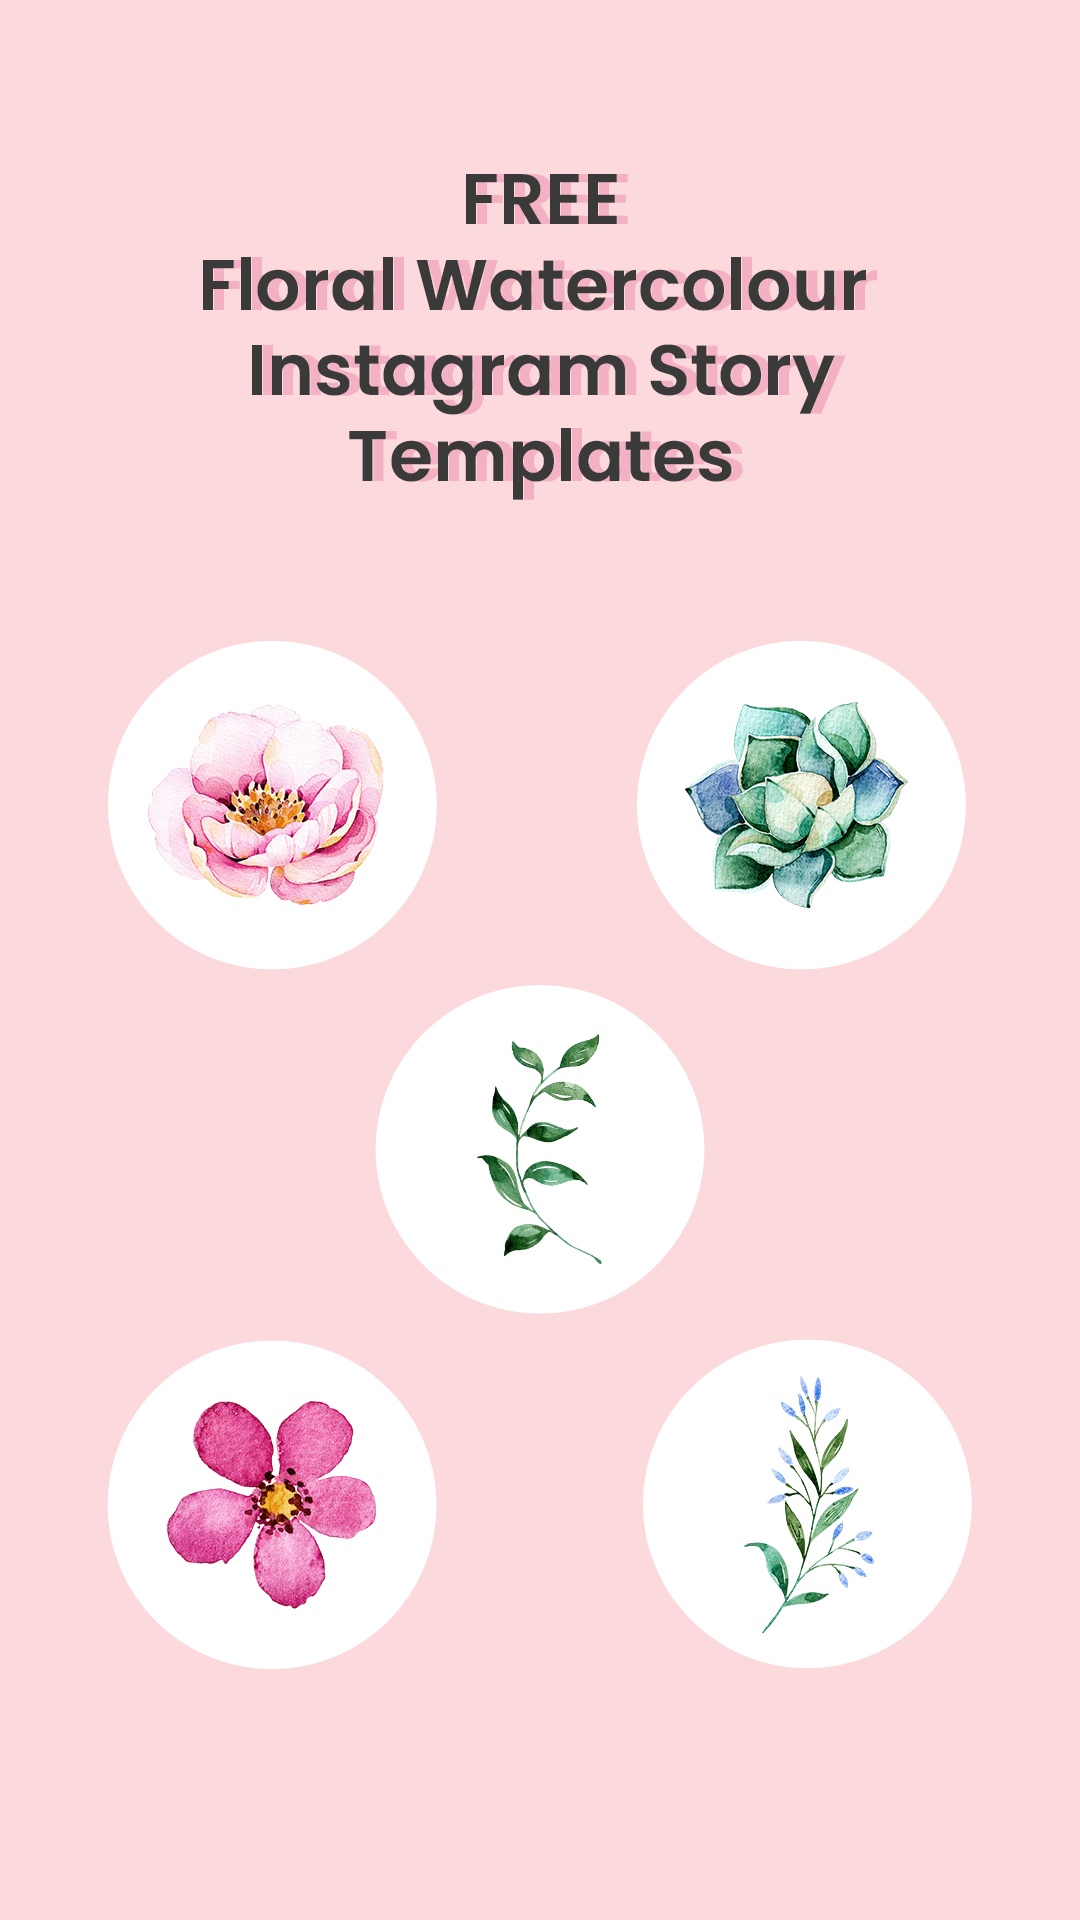 Free Floral Water Instagram Story Templates Pin For Later | Georgie St Clair